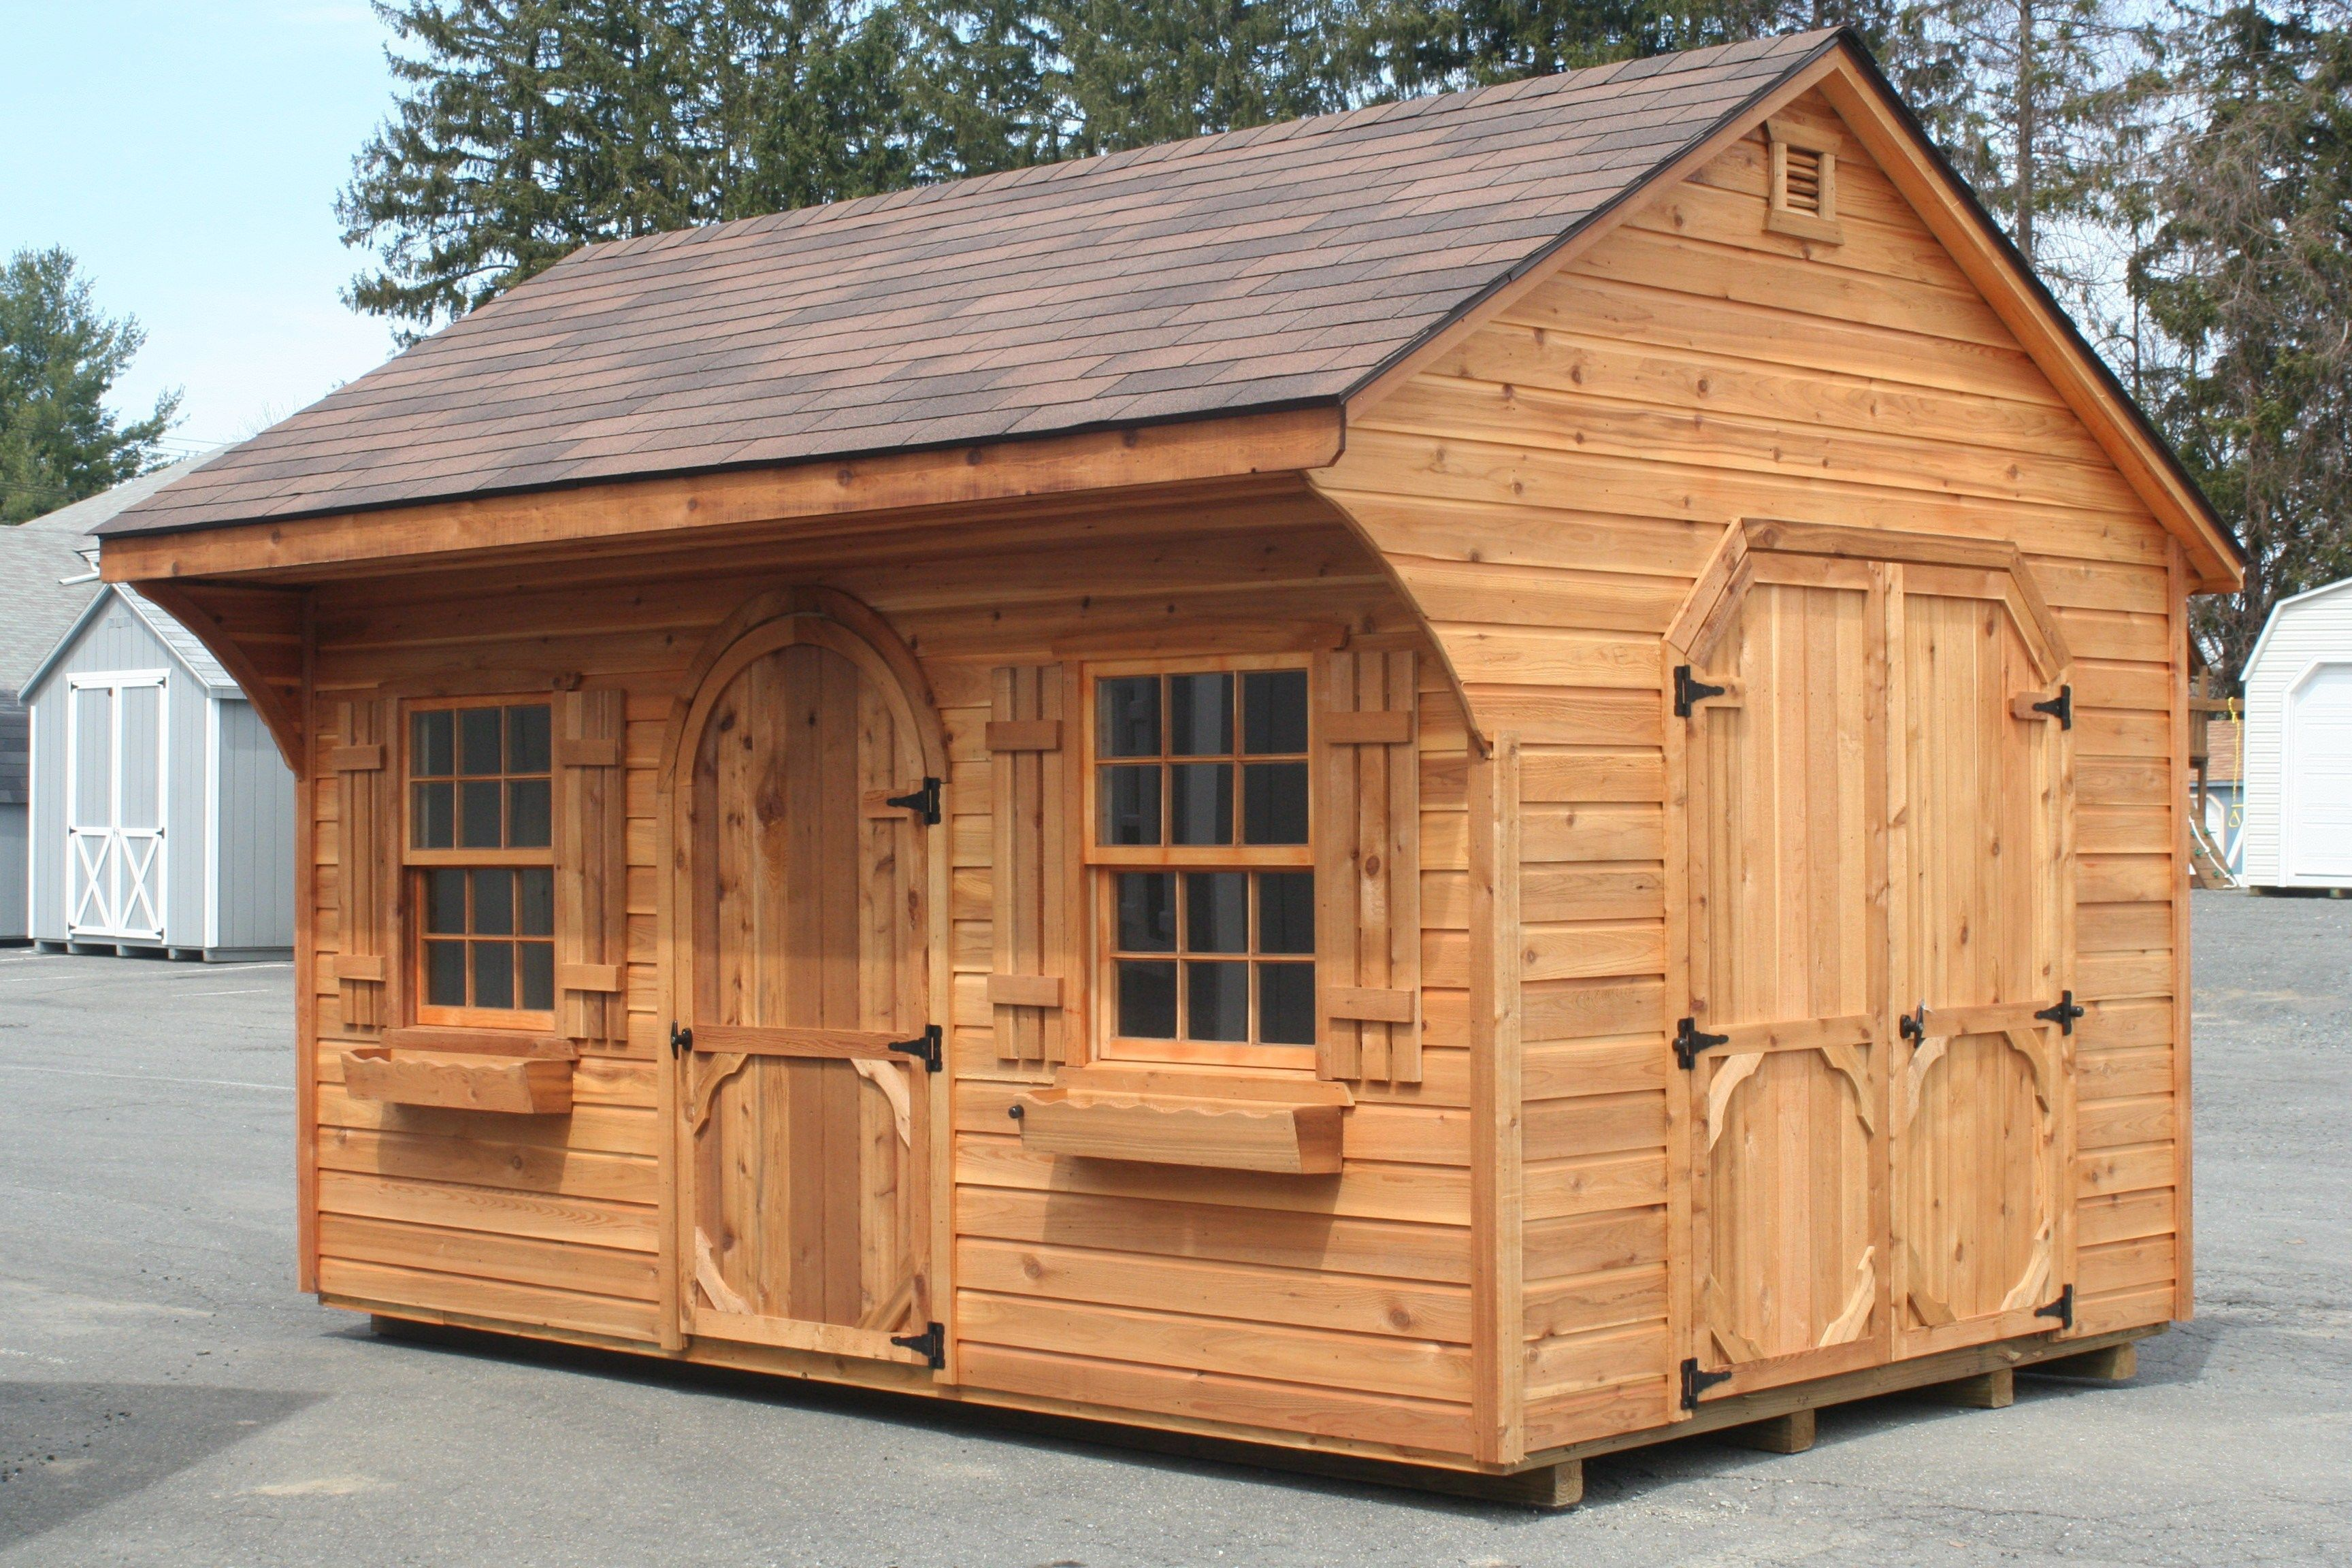 Storage Shed Styles Storage Sheds Plans Designs Styles Shed Shed